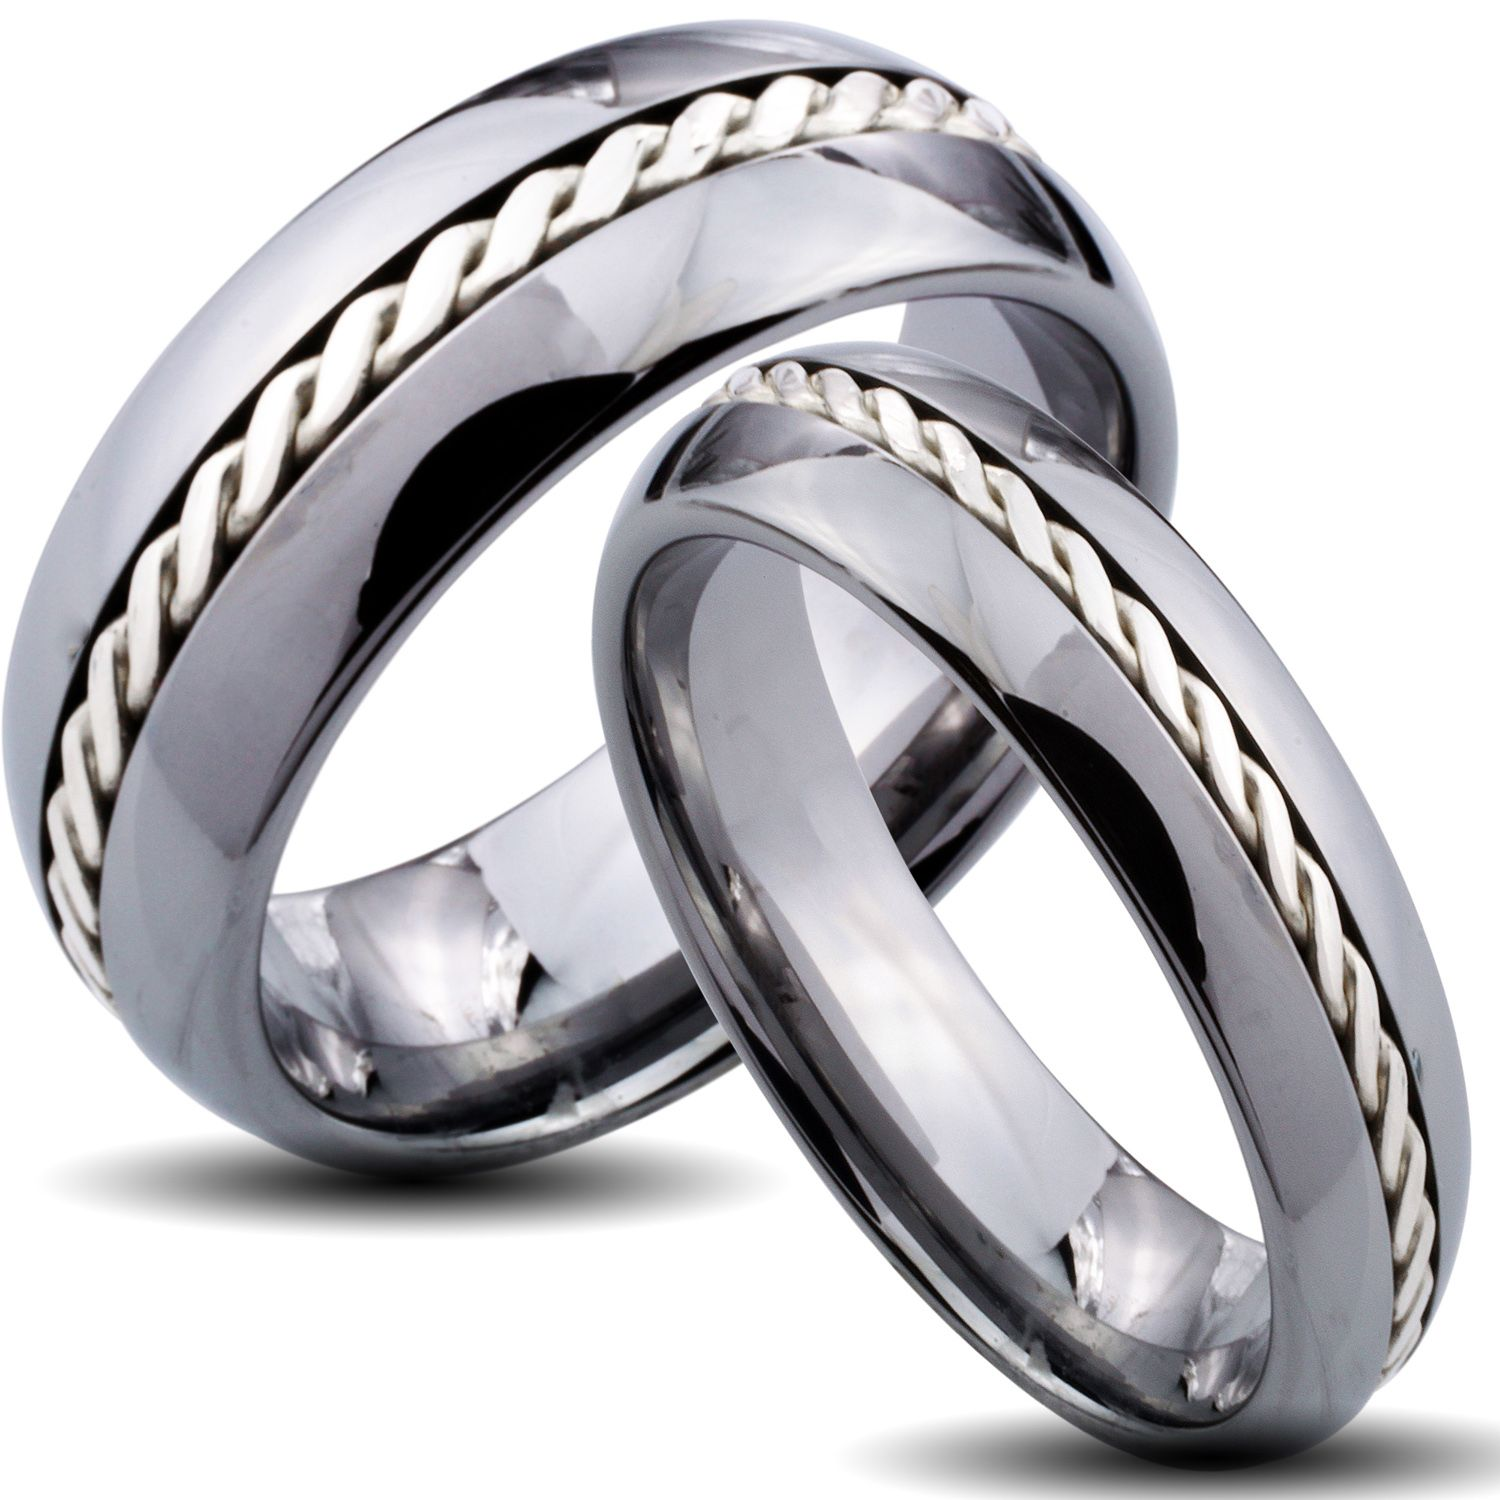 tungsten carbide silver rope inlay his and her wedding band set save 10 14219 was